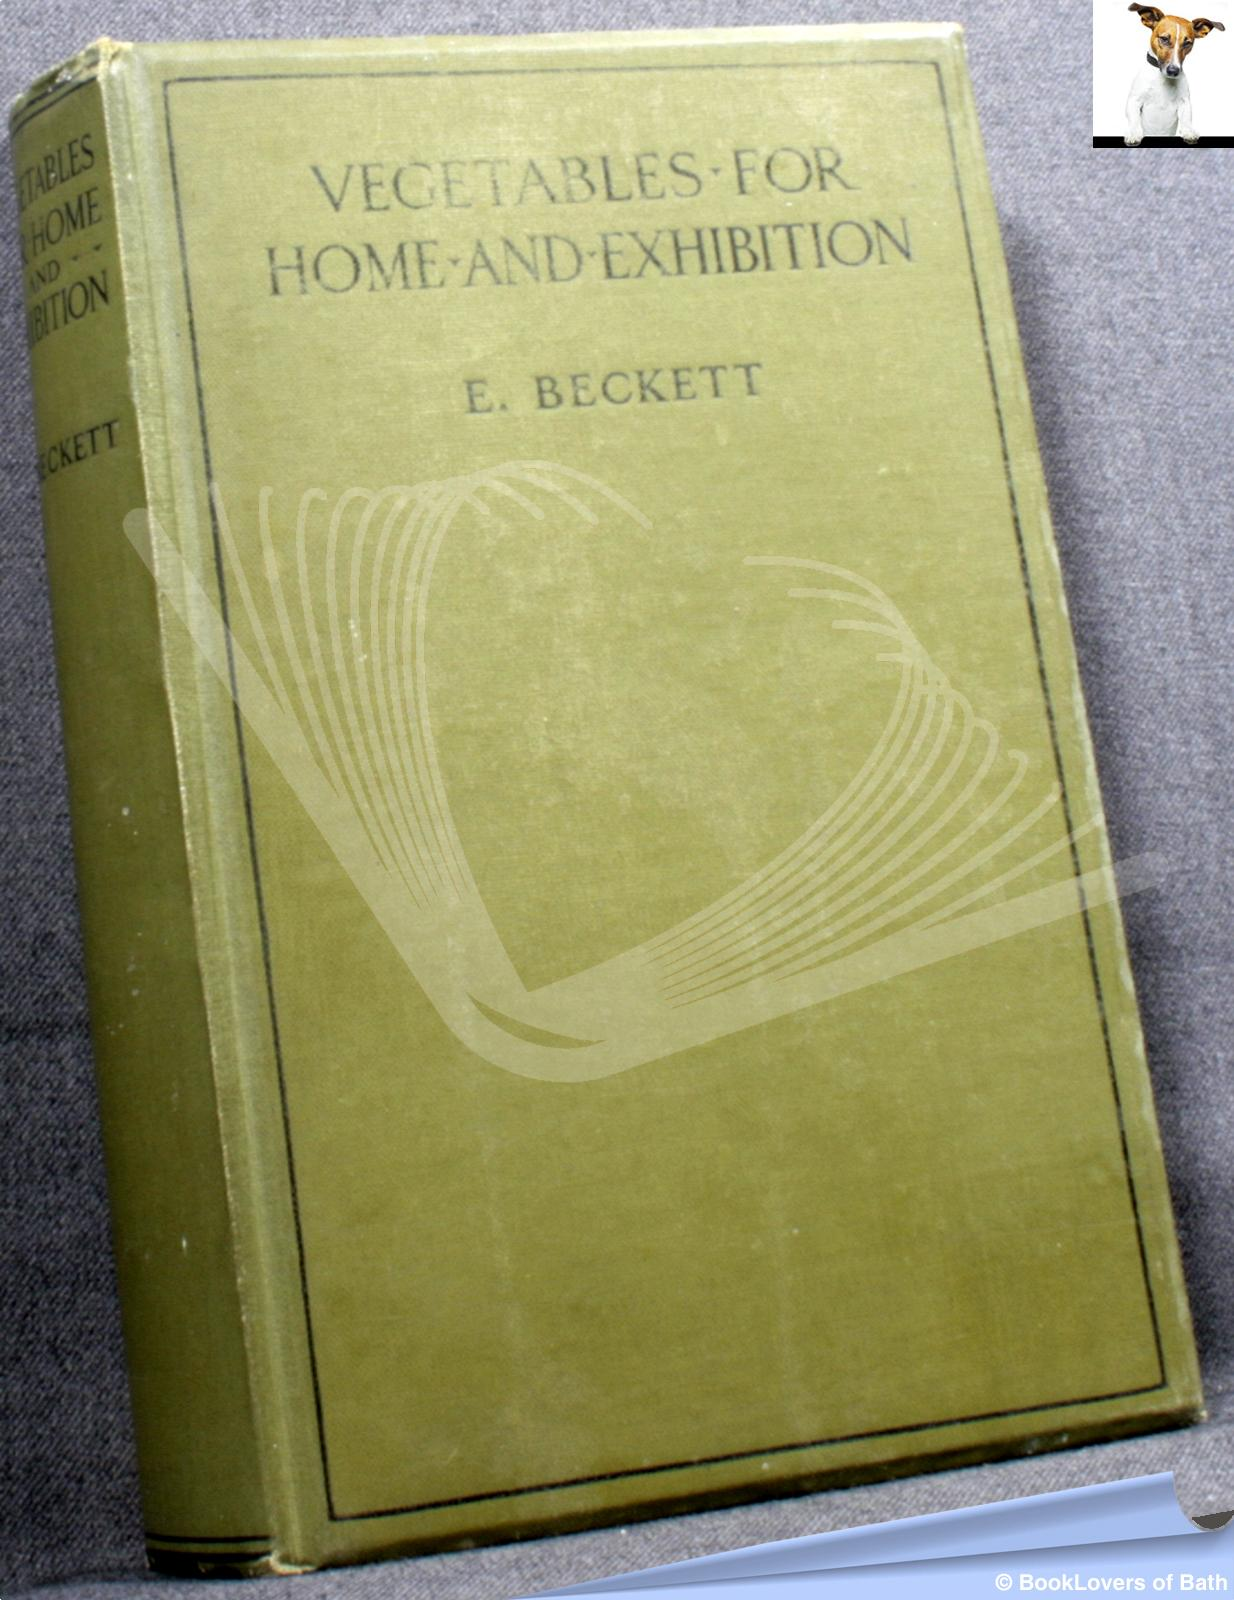 Vegetables For Home and Exhibition: With Chapters On Soil Preparation, Crop Rotation, Tools, Preparing and Exhibiting Vegetables, Herbs and Salading, Diseases and Insect Enemies of Kitchen Garden Crops, a Monthly Calendar of Kitchen Garden Work - Edwin Beckett